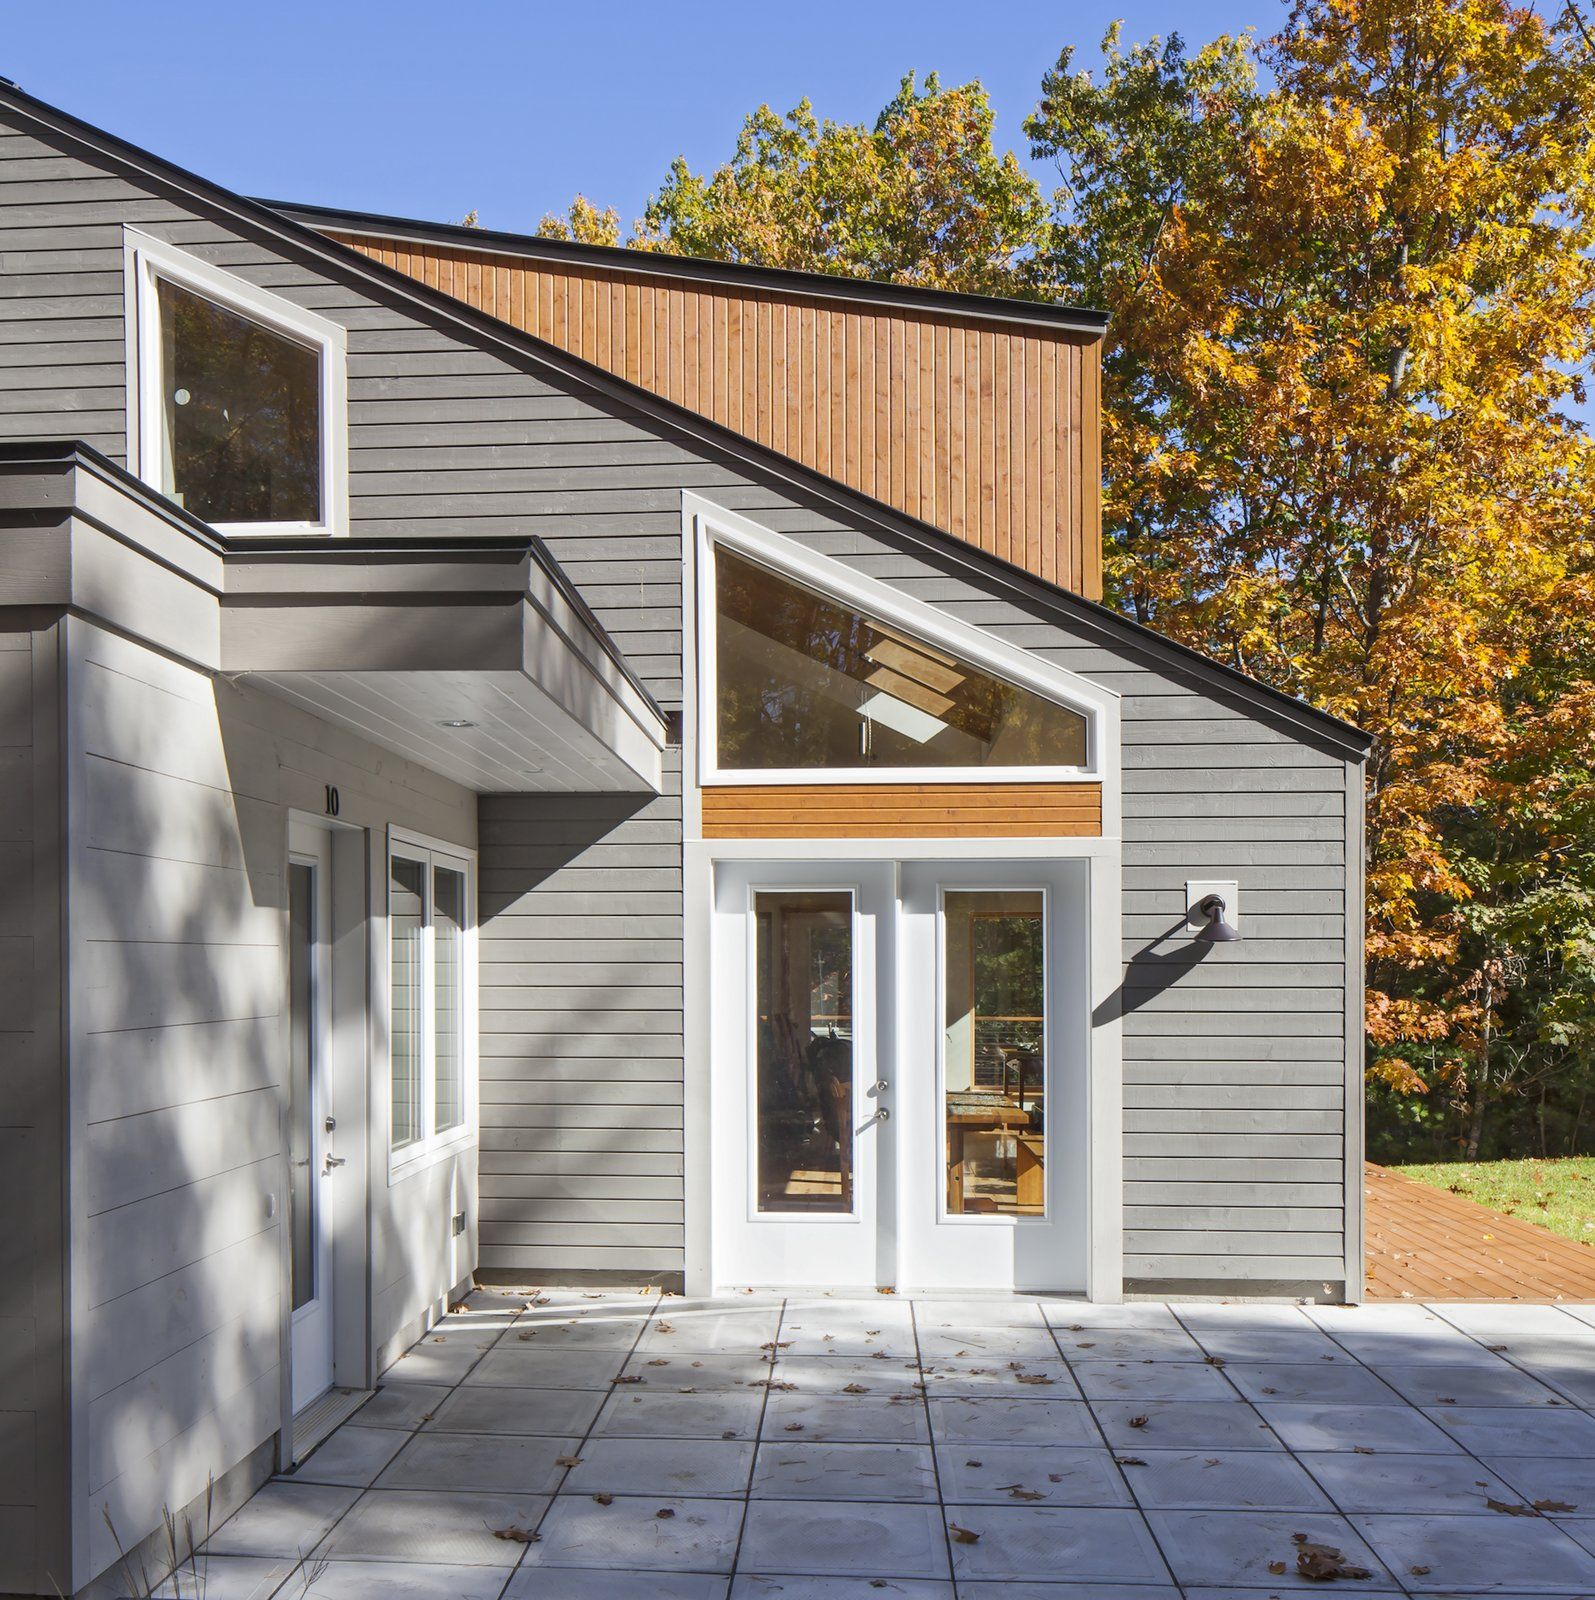 Modern Exterior Wood Siding: Modern Home With Exterior, House, Metal Roof Material, And